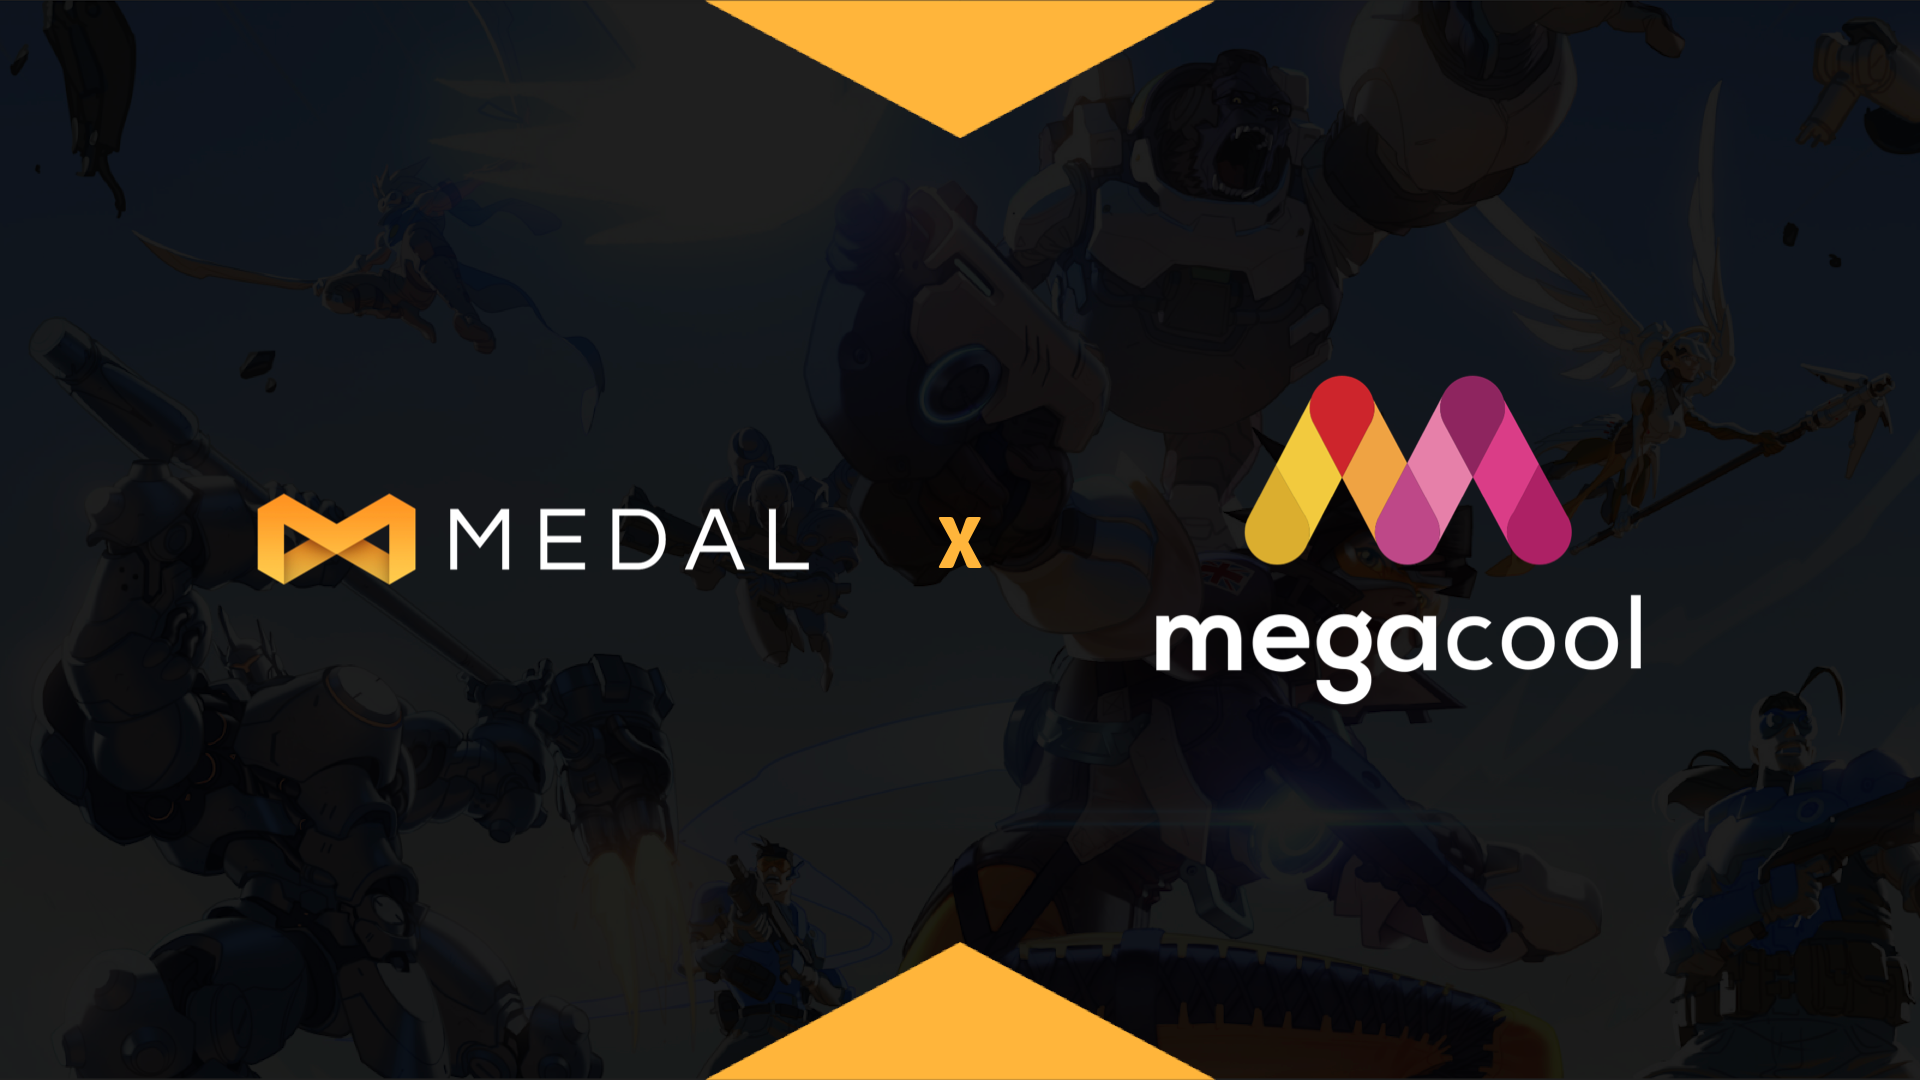 Medal.tv acquires Megacool.co 🎉